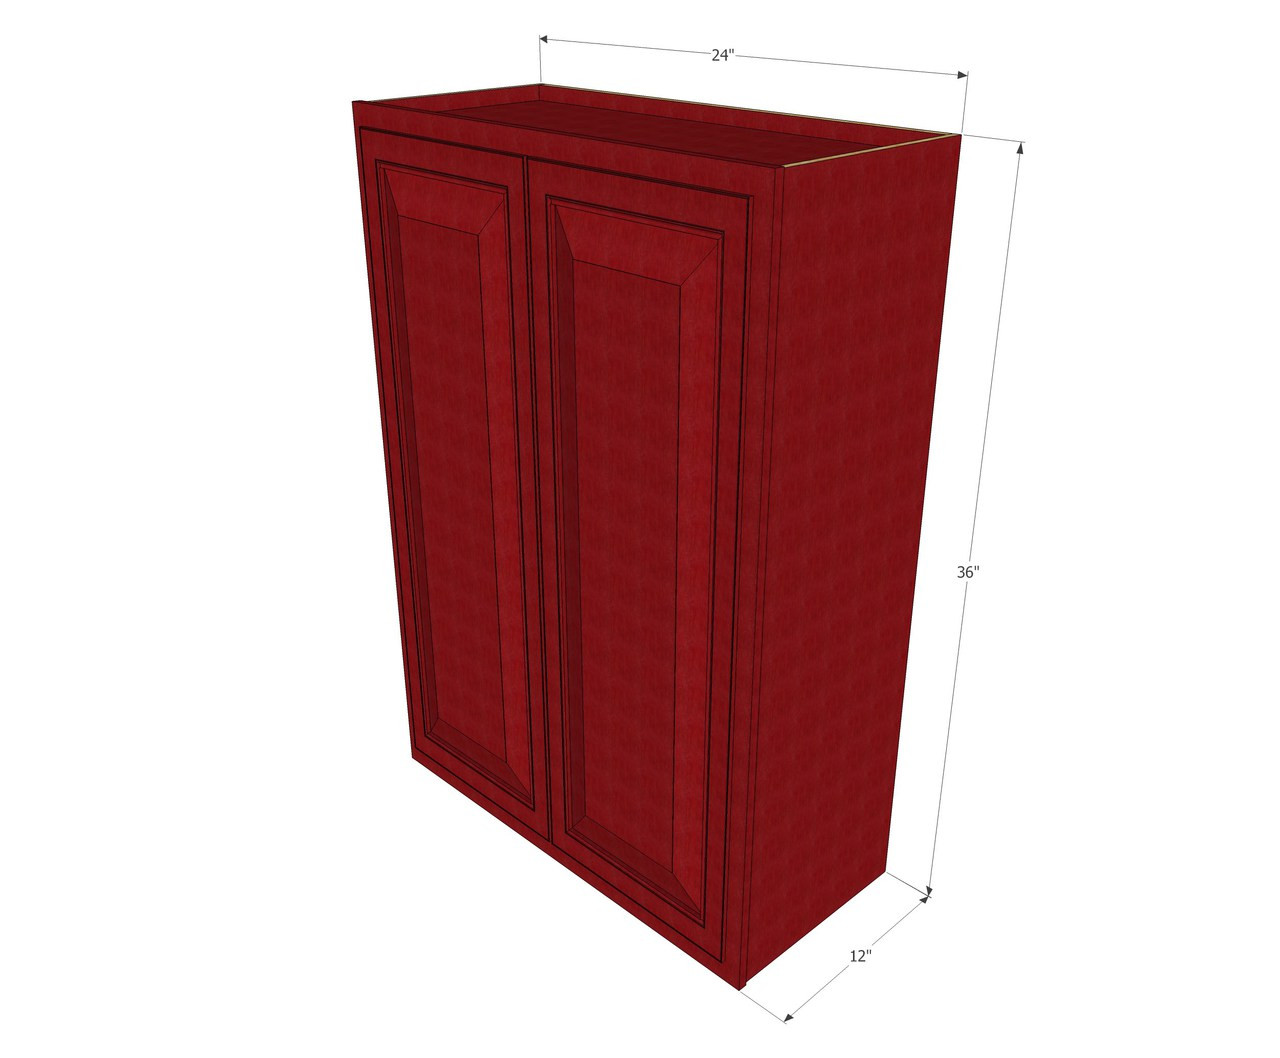 Large Double Door Grand Reserve Cherry Wall Cabinet 24 Inch Wide X 36 Inch High Kitchen Cabinet Warehouse